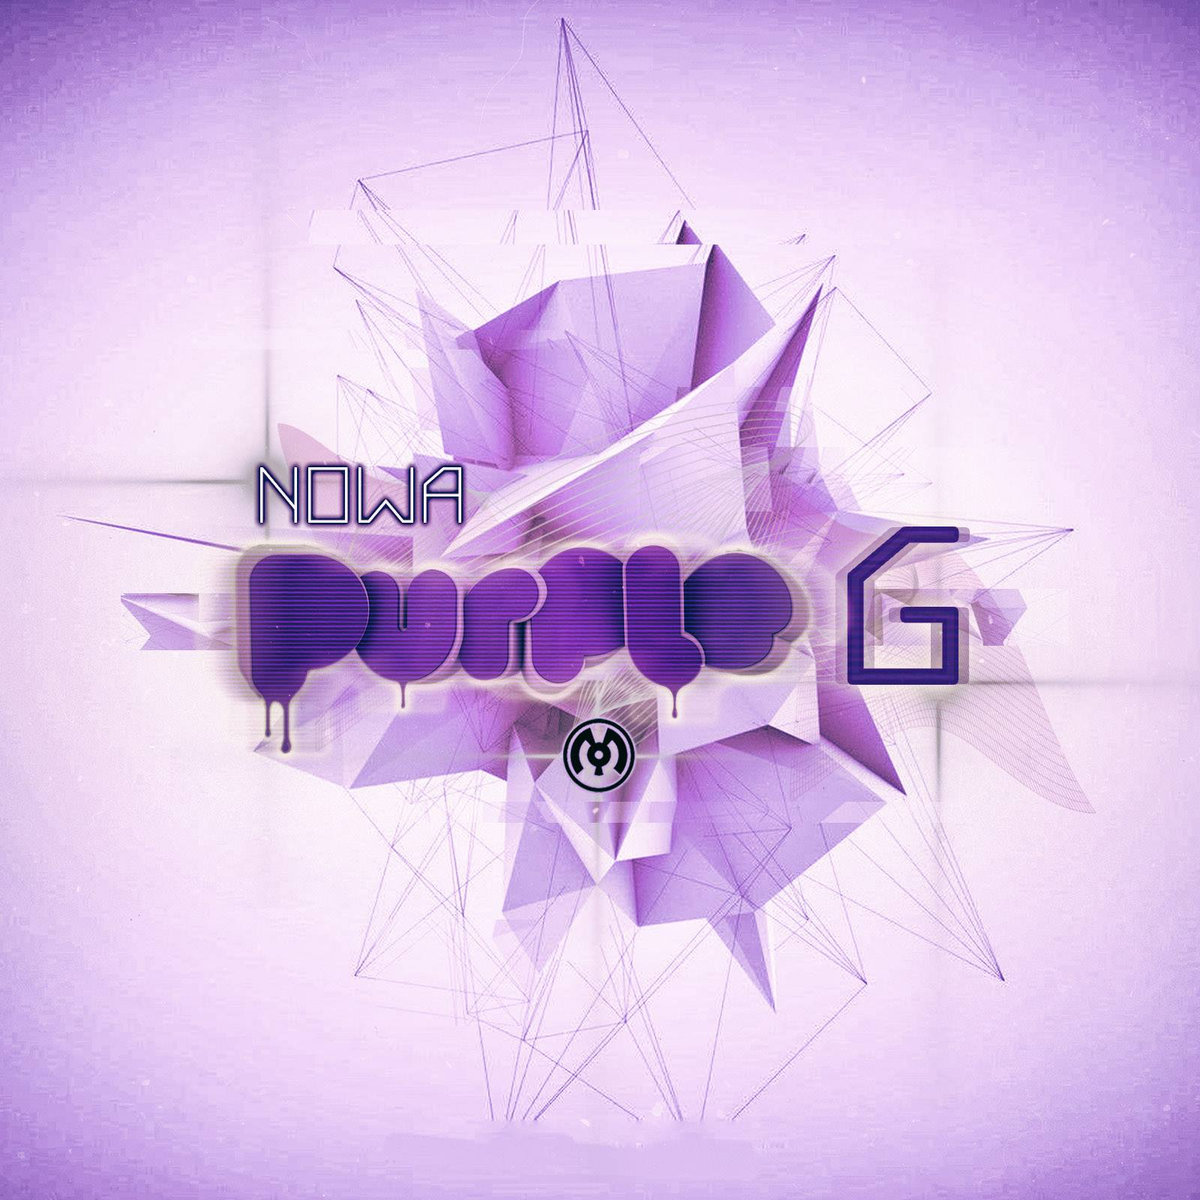 NoWa - Switched @ 'Purple G' album (electronic, dubstep)